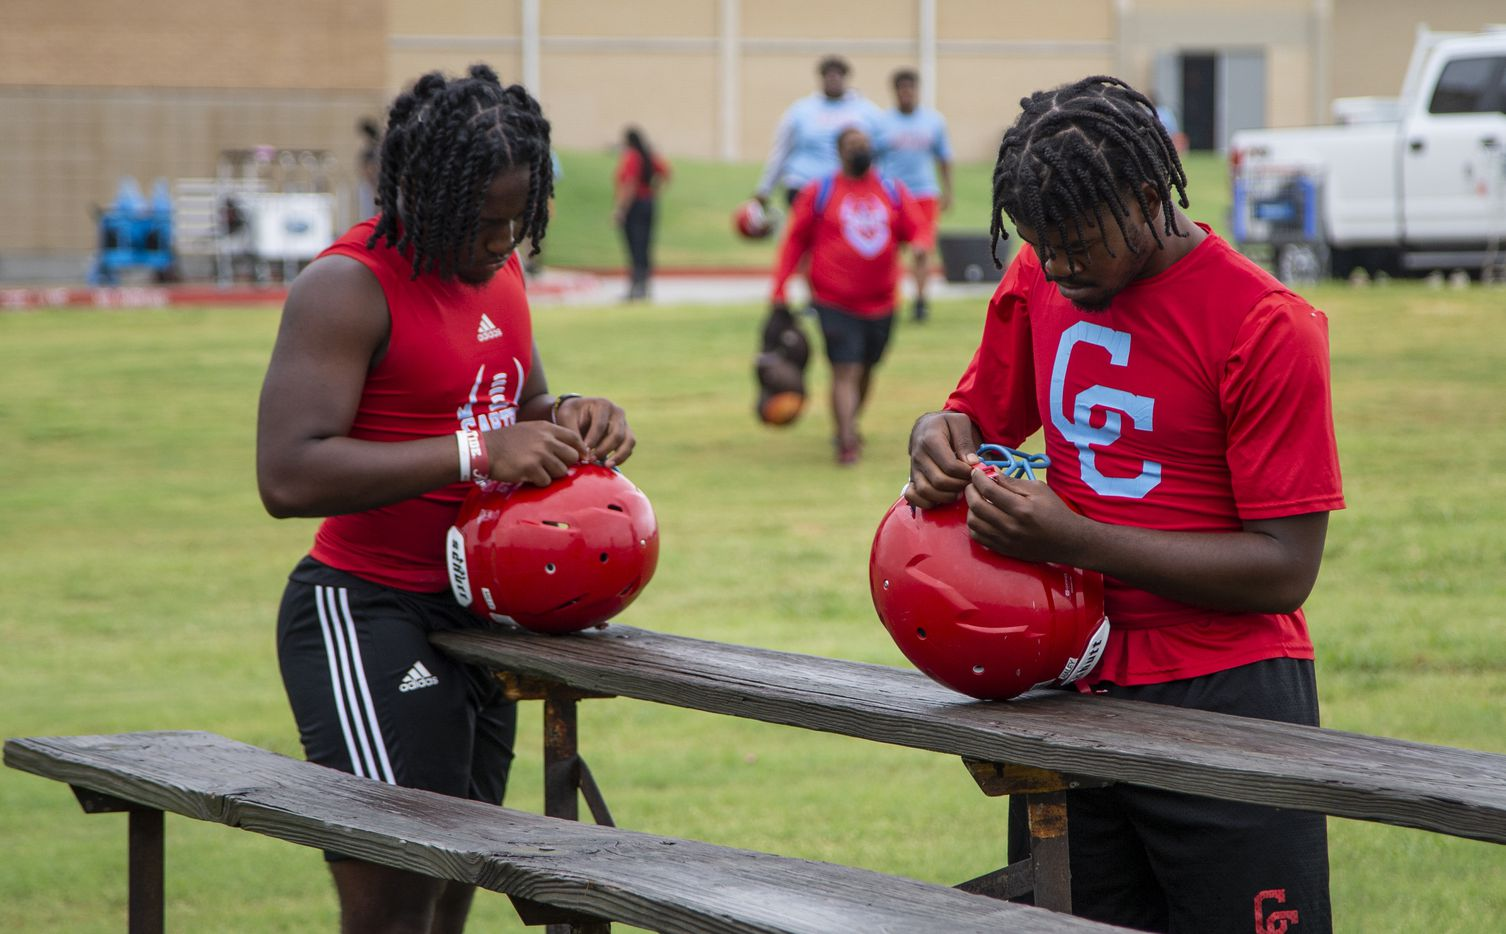 Carter senior receiver Marquis Mills, left, and senior defensive end Solomon Haley adjust their helmets before the start of the first football practice of the season at Carter High School in Dallas, Monday, August 2, 2021. (Brandon Wade/Special Contributor)